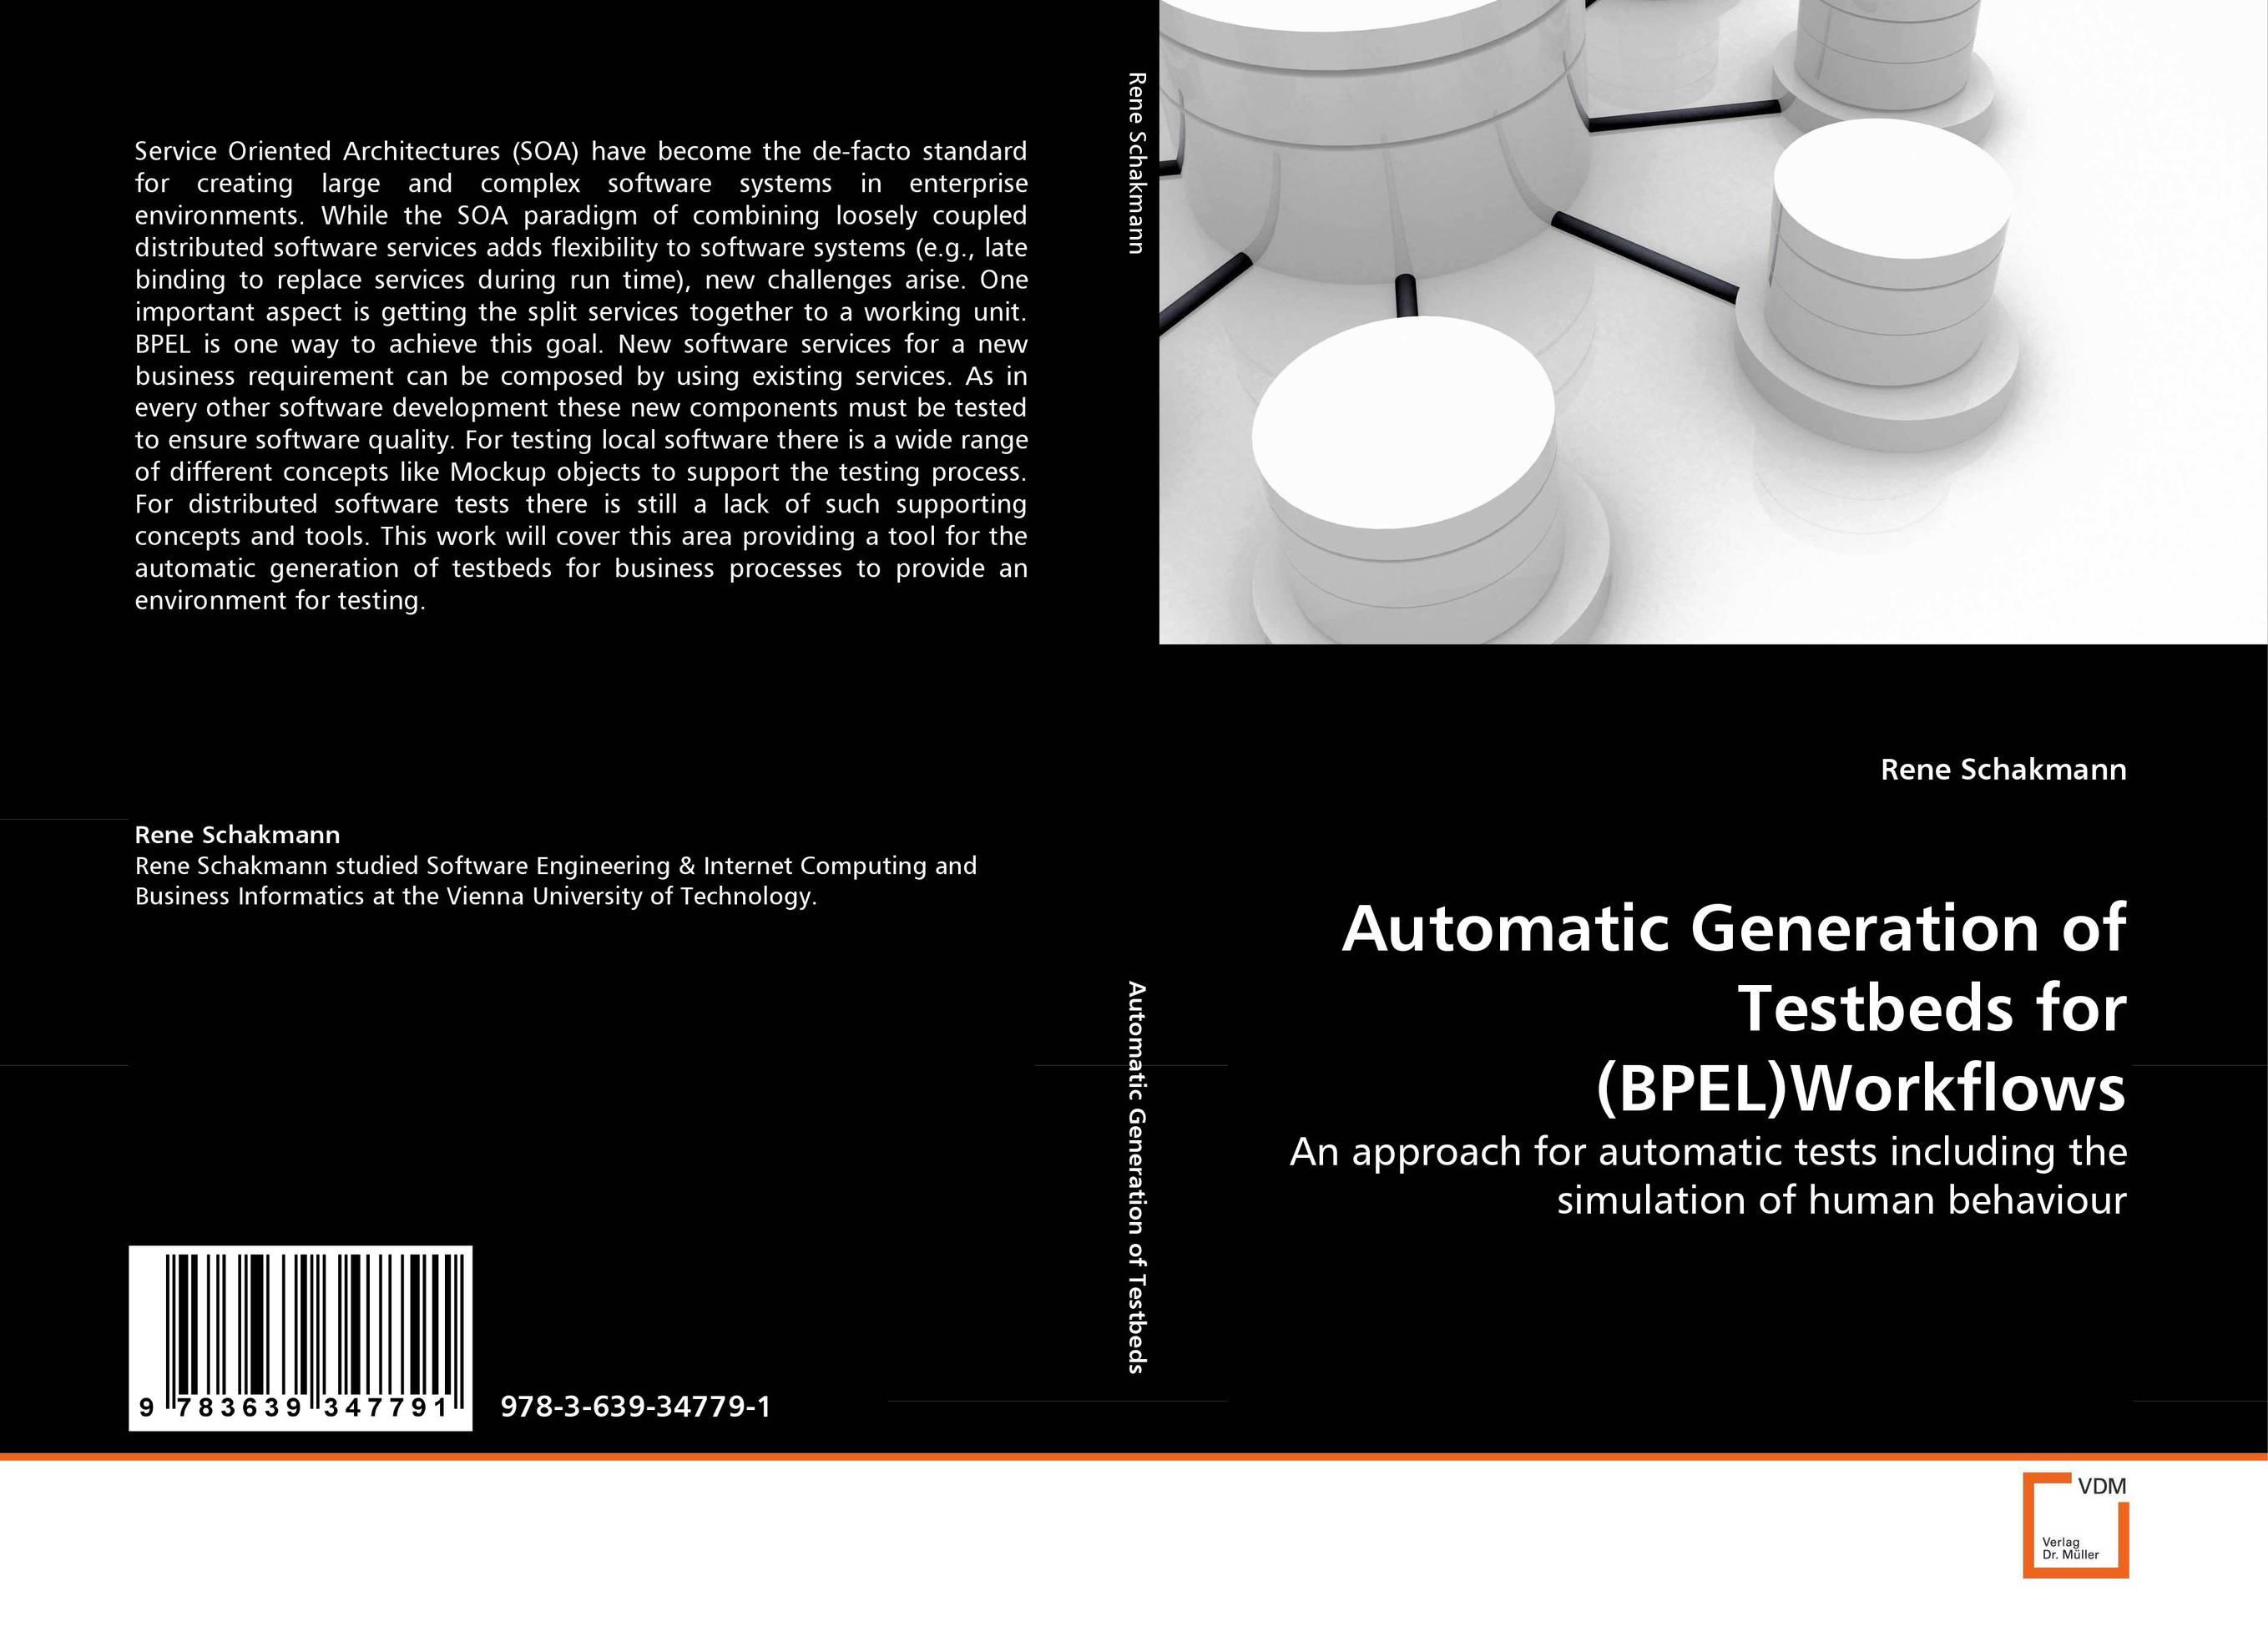 Automatic Generation of Testbeds for (BPEL)Workflows eric marks a service oriented architecture soa governance for the services driven enterprise